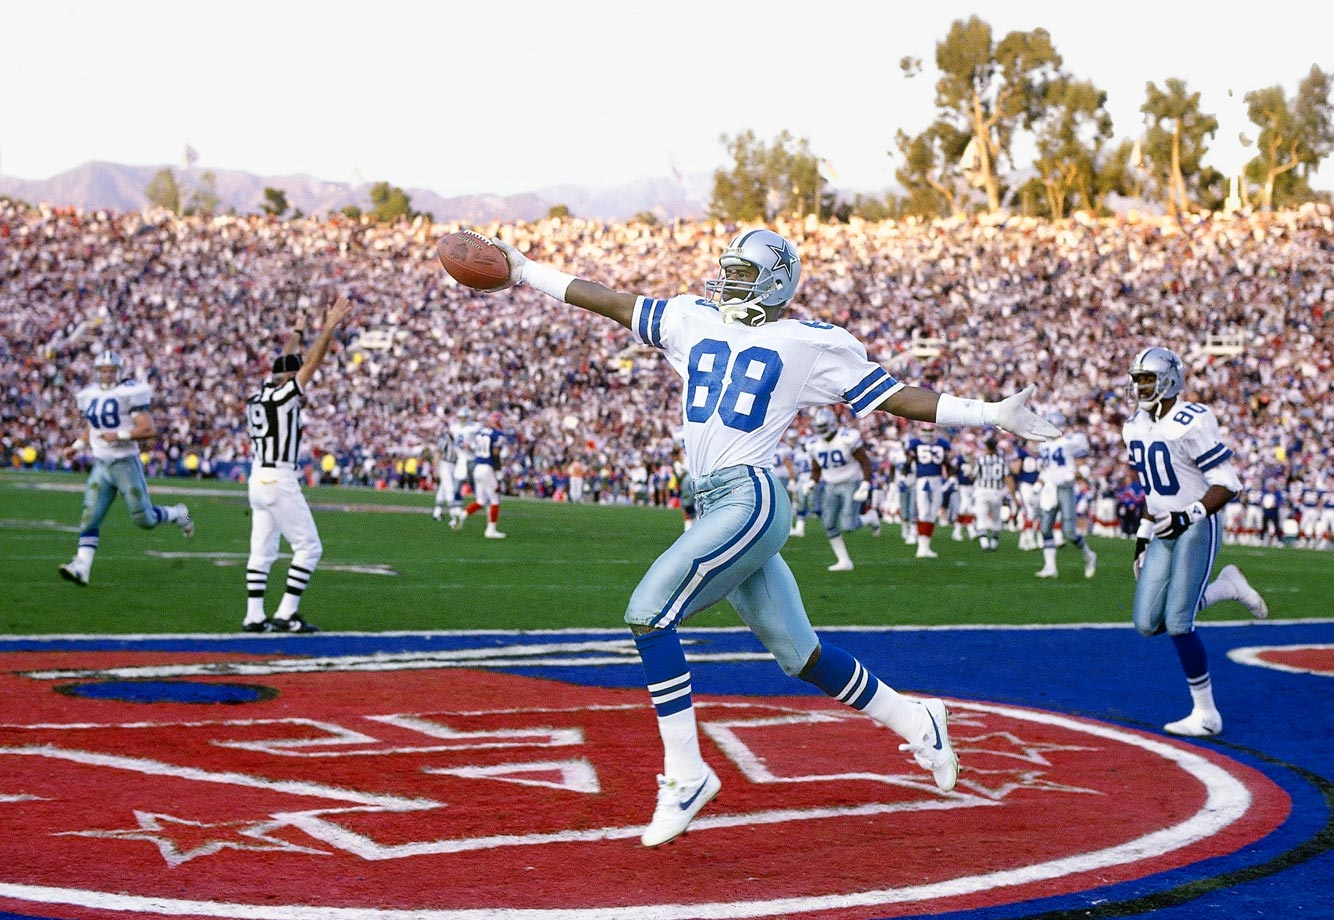 Michael Irvin struts after catching a touchdown pass against Buffalo.